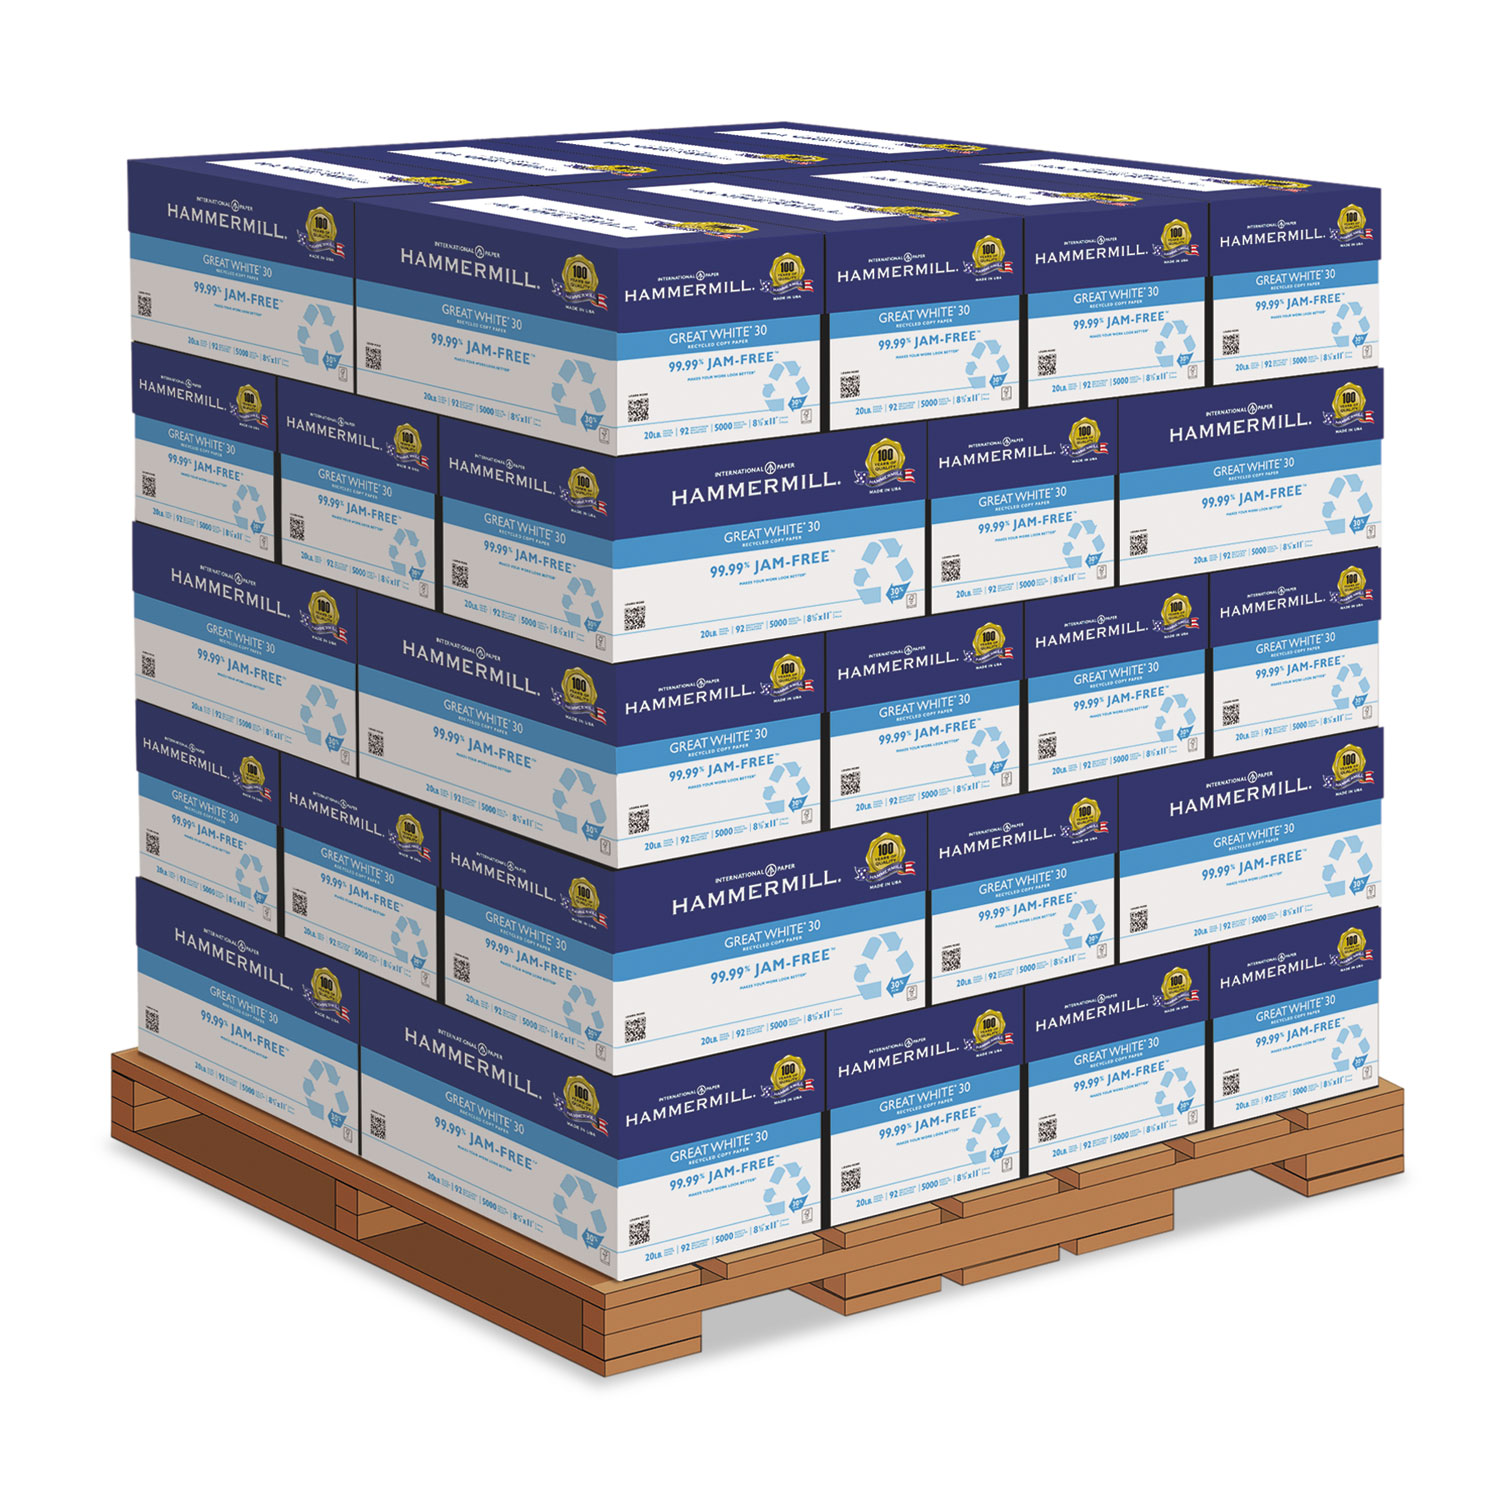 Great White 30 Recycled Print Paper, 92 Bright, 20lb, 8.5 x 11, White, 500 Sheets/Ream, 10 Reams/Carton, 40 Cartons/Pallet